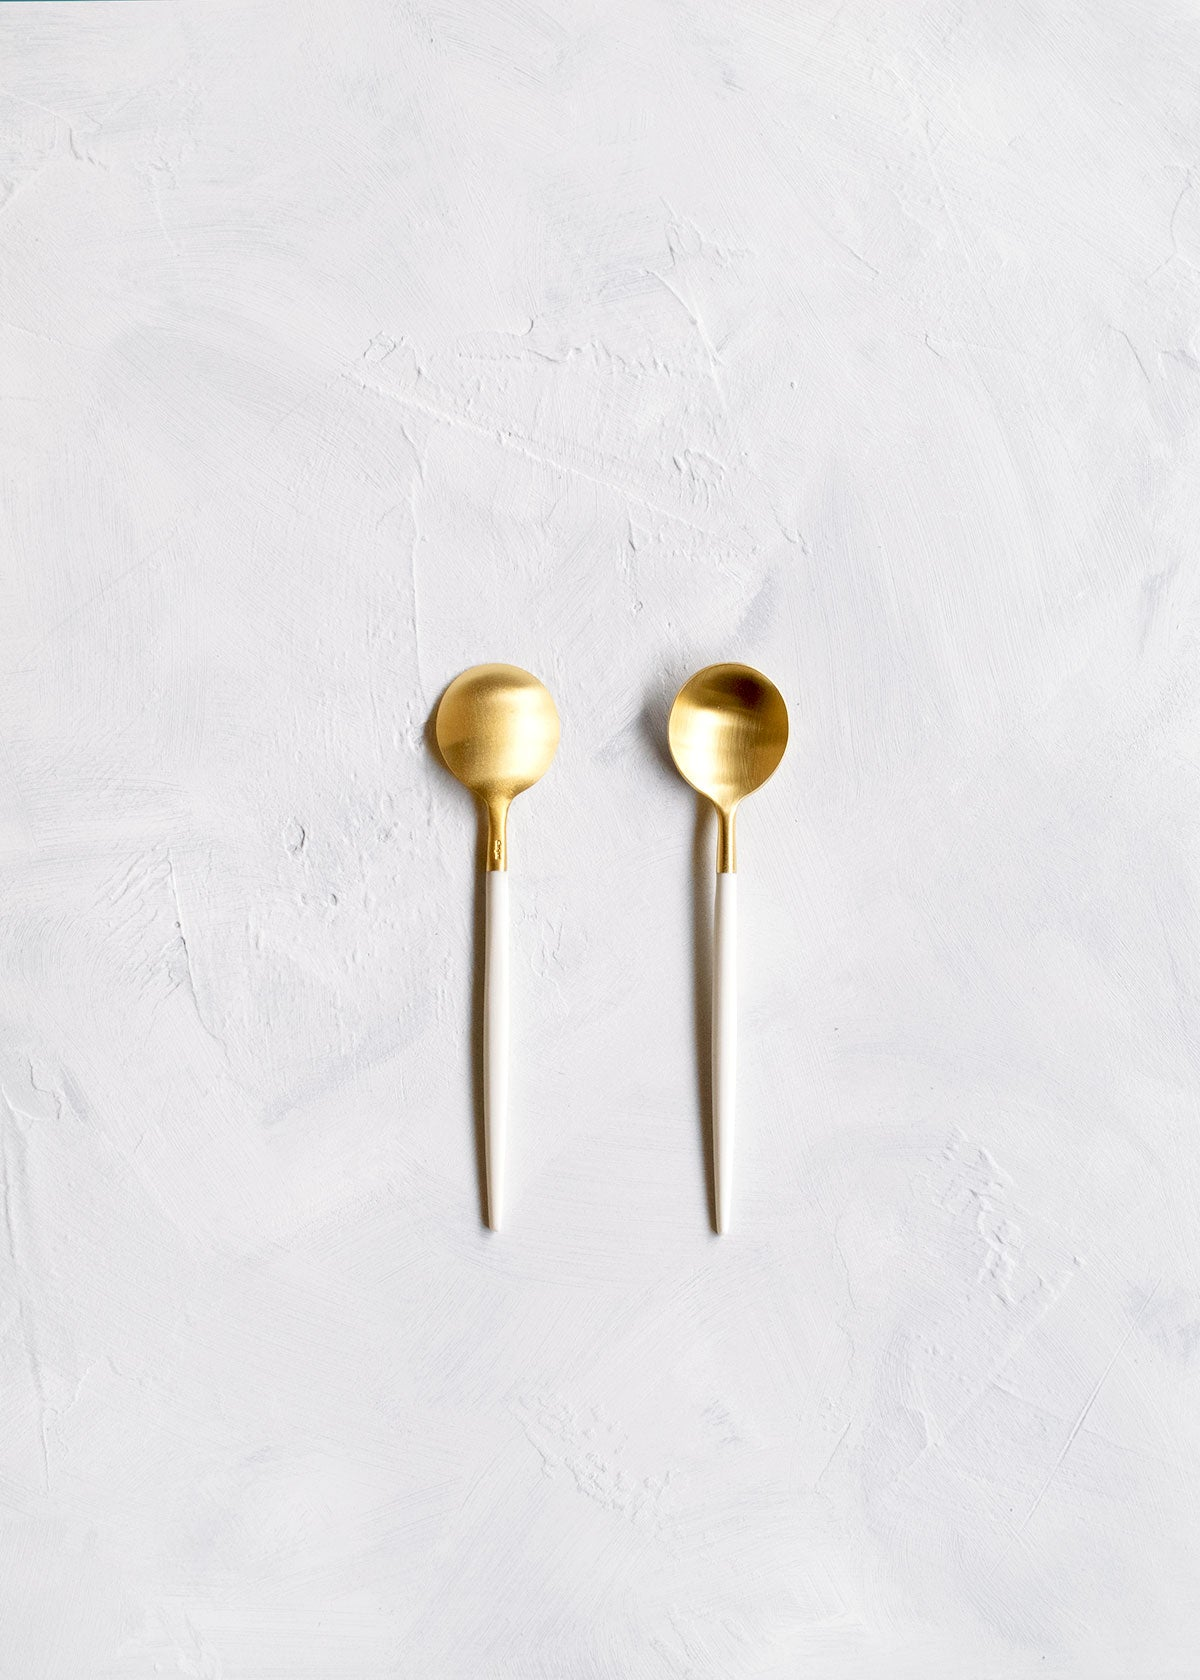 Cutipol Goa Coffee Spoon, Set of 2